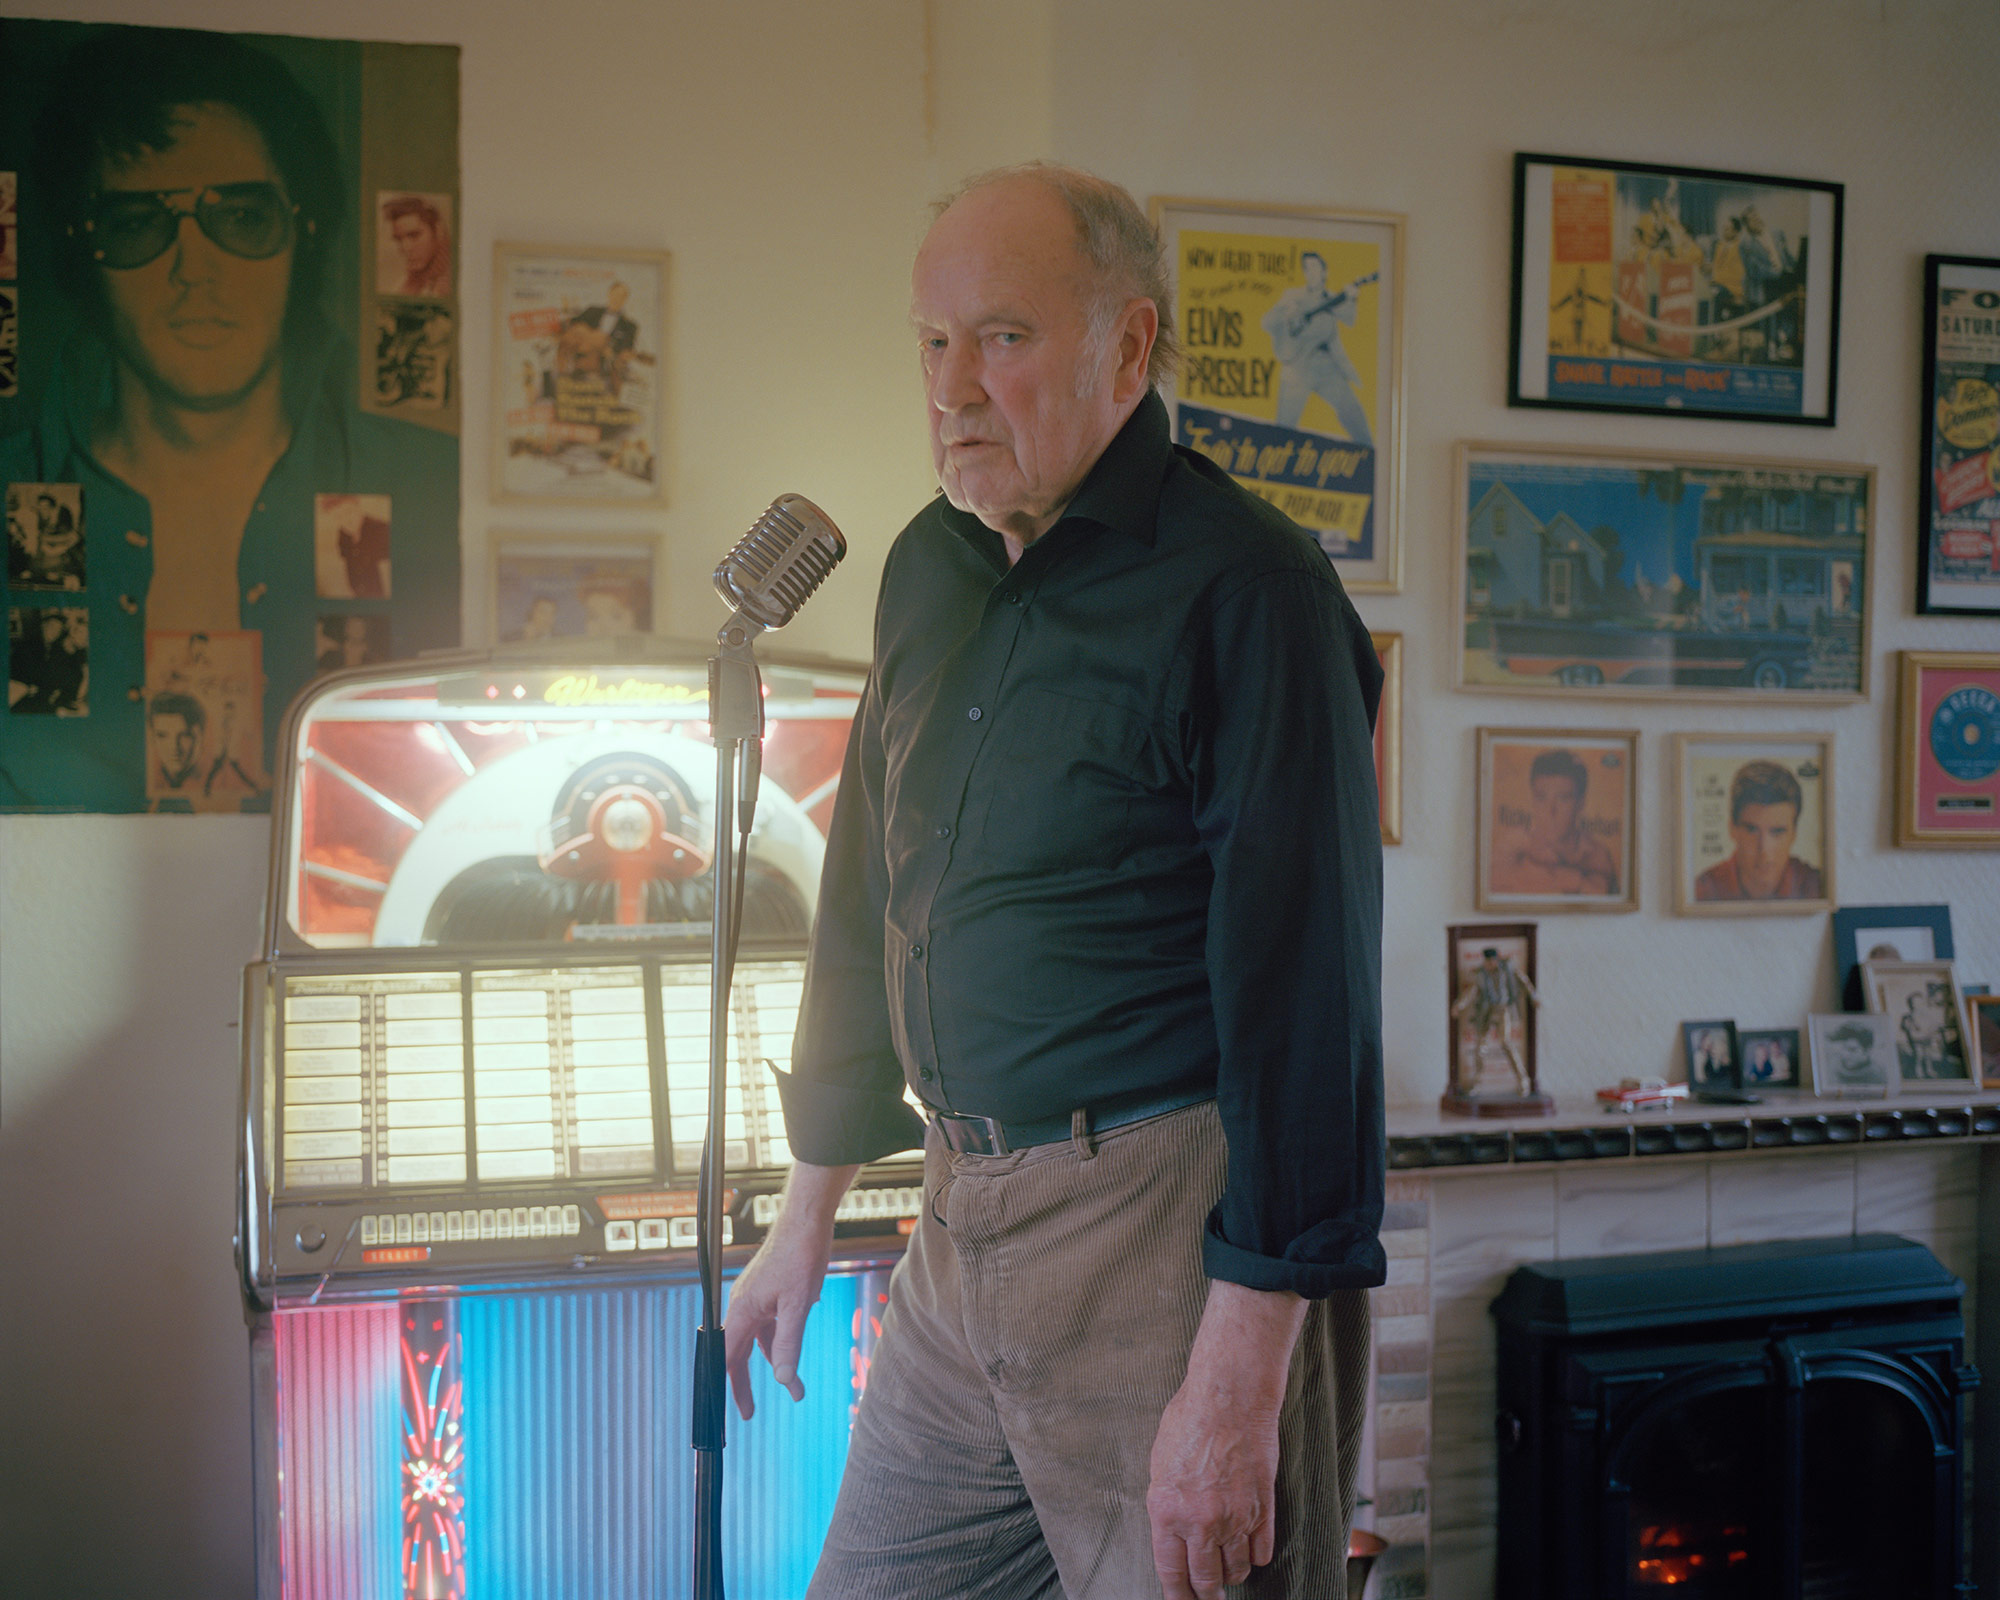 Stephen, an ex-miner and Elvis Presley fanatic, at home with his 1950's jukebox.